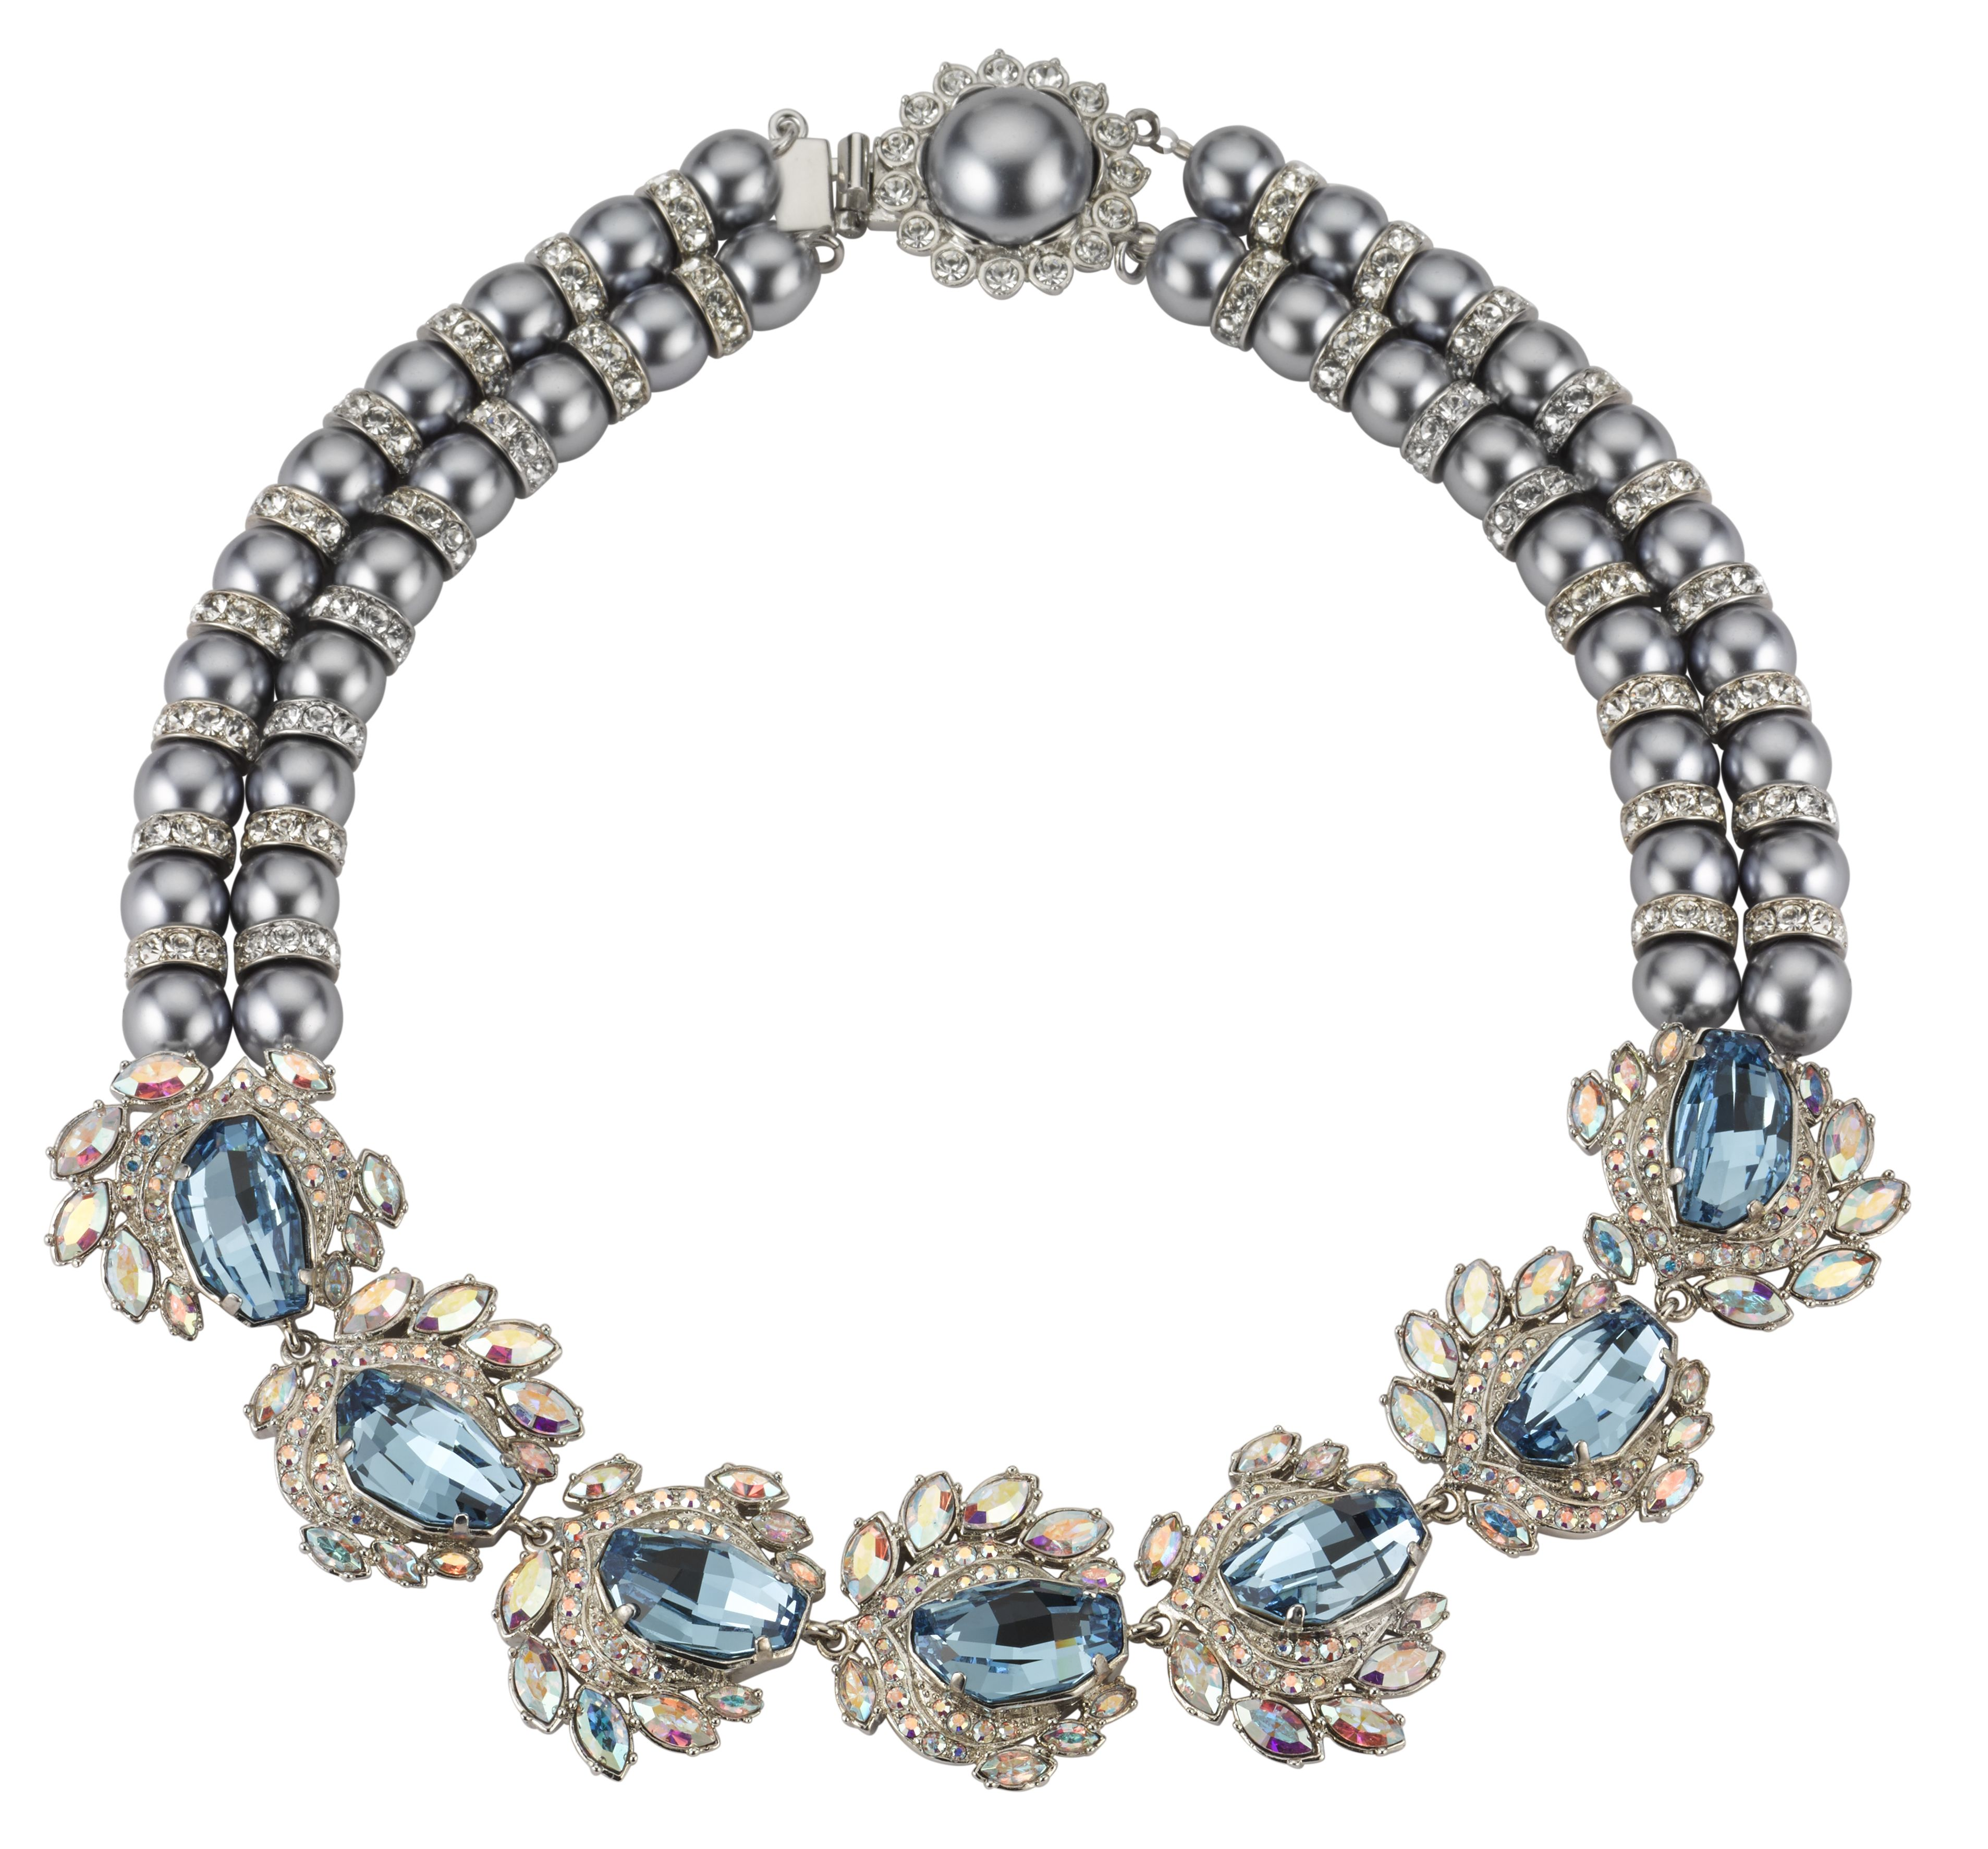 009b1a7ff66 Duchess Collection #Mawi #AW15 #Necklaces Swarovski Crystal Necklace,  Crystal Jewelry, Stone